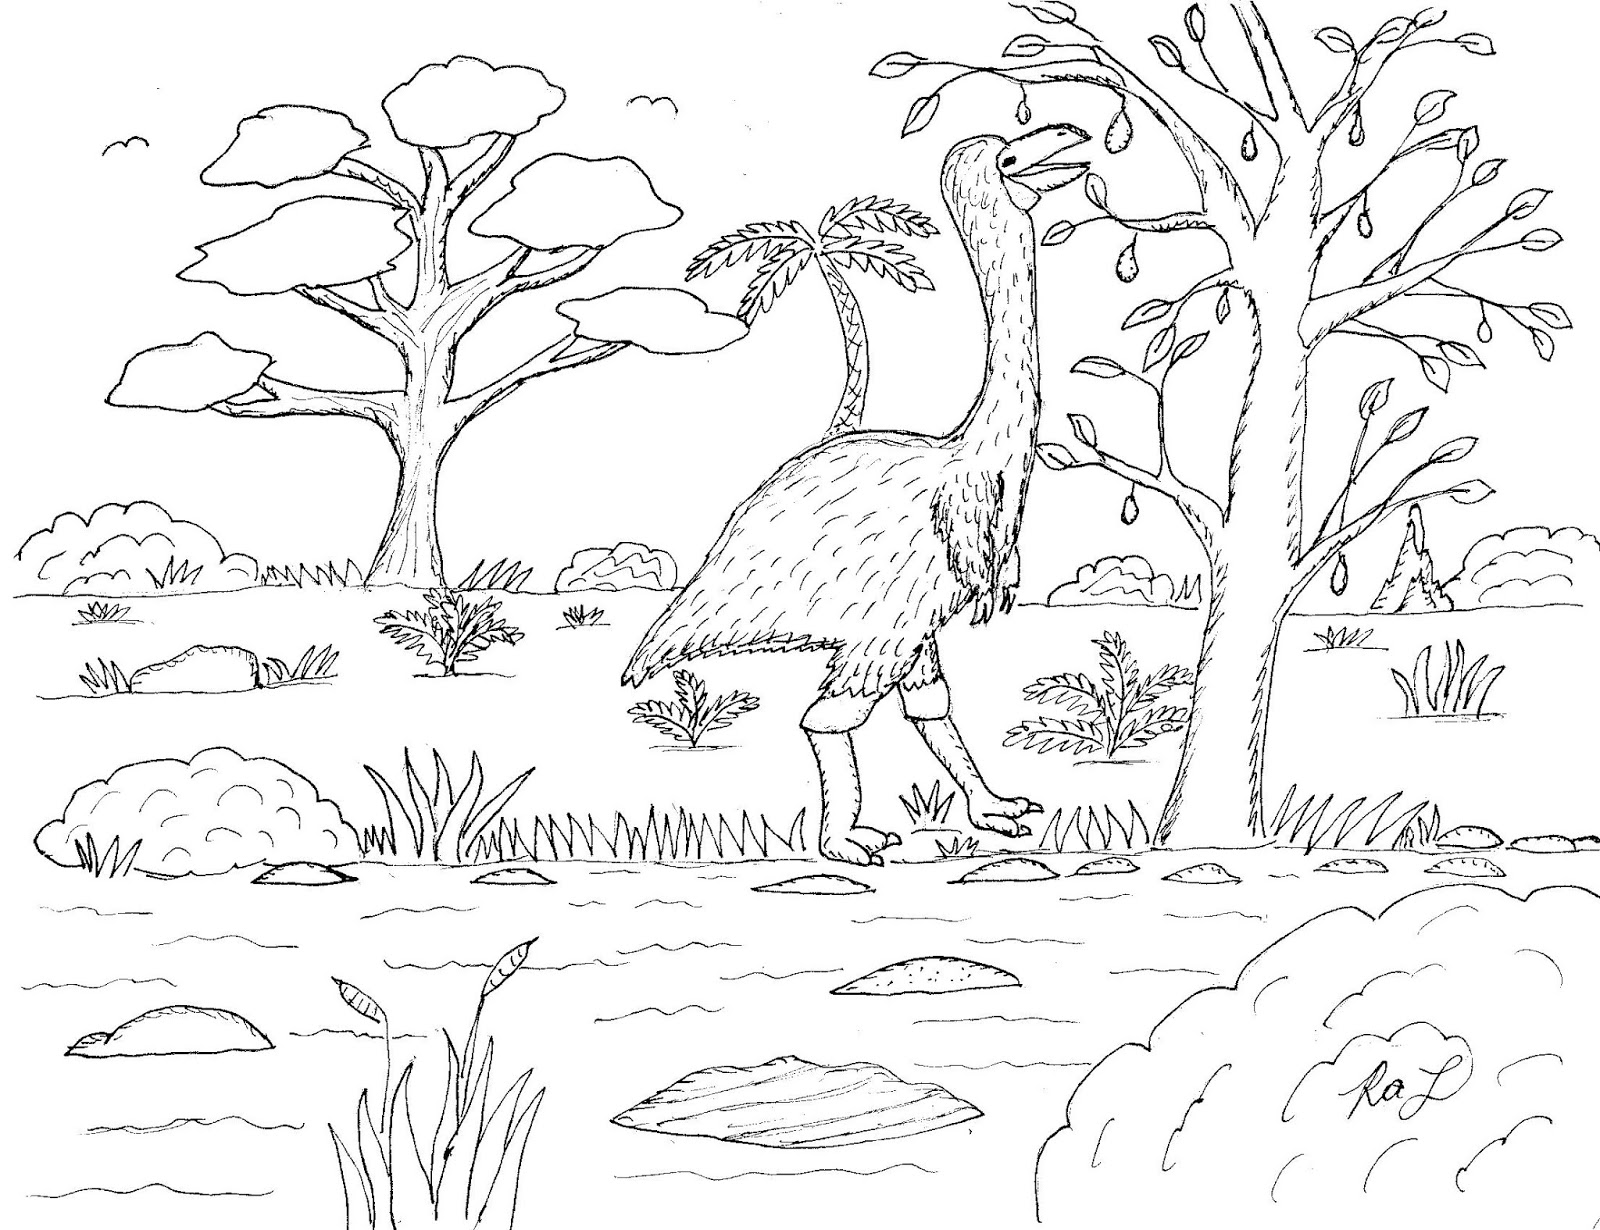 - Robin's Great Coloring Pages: Birds Of Australia Coloring Pages